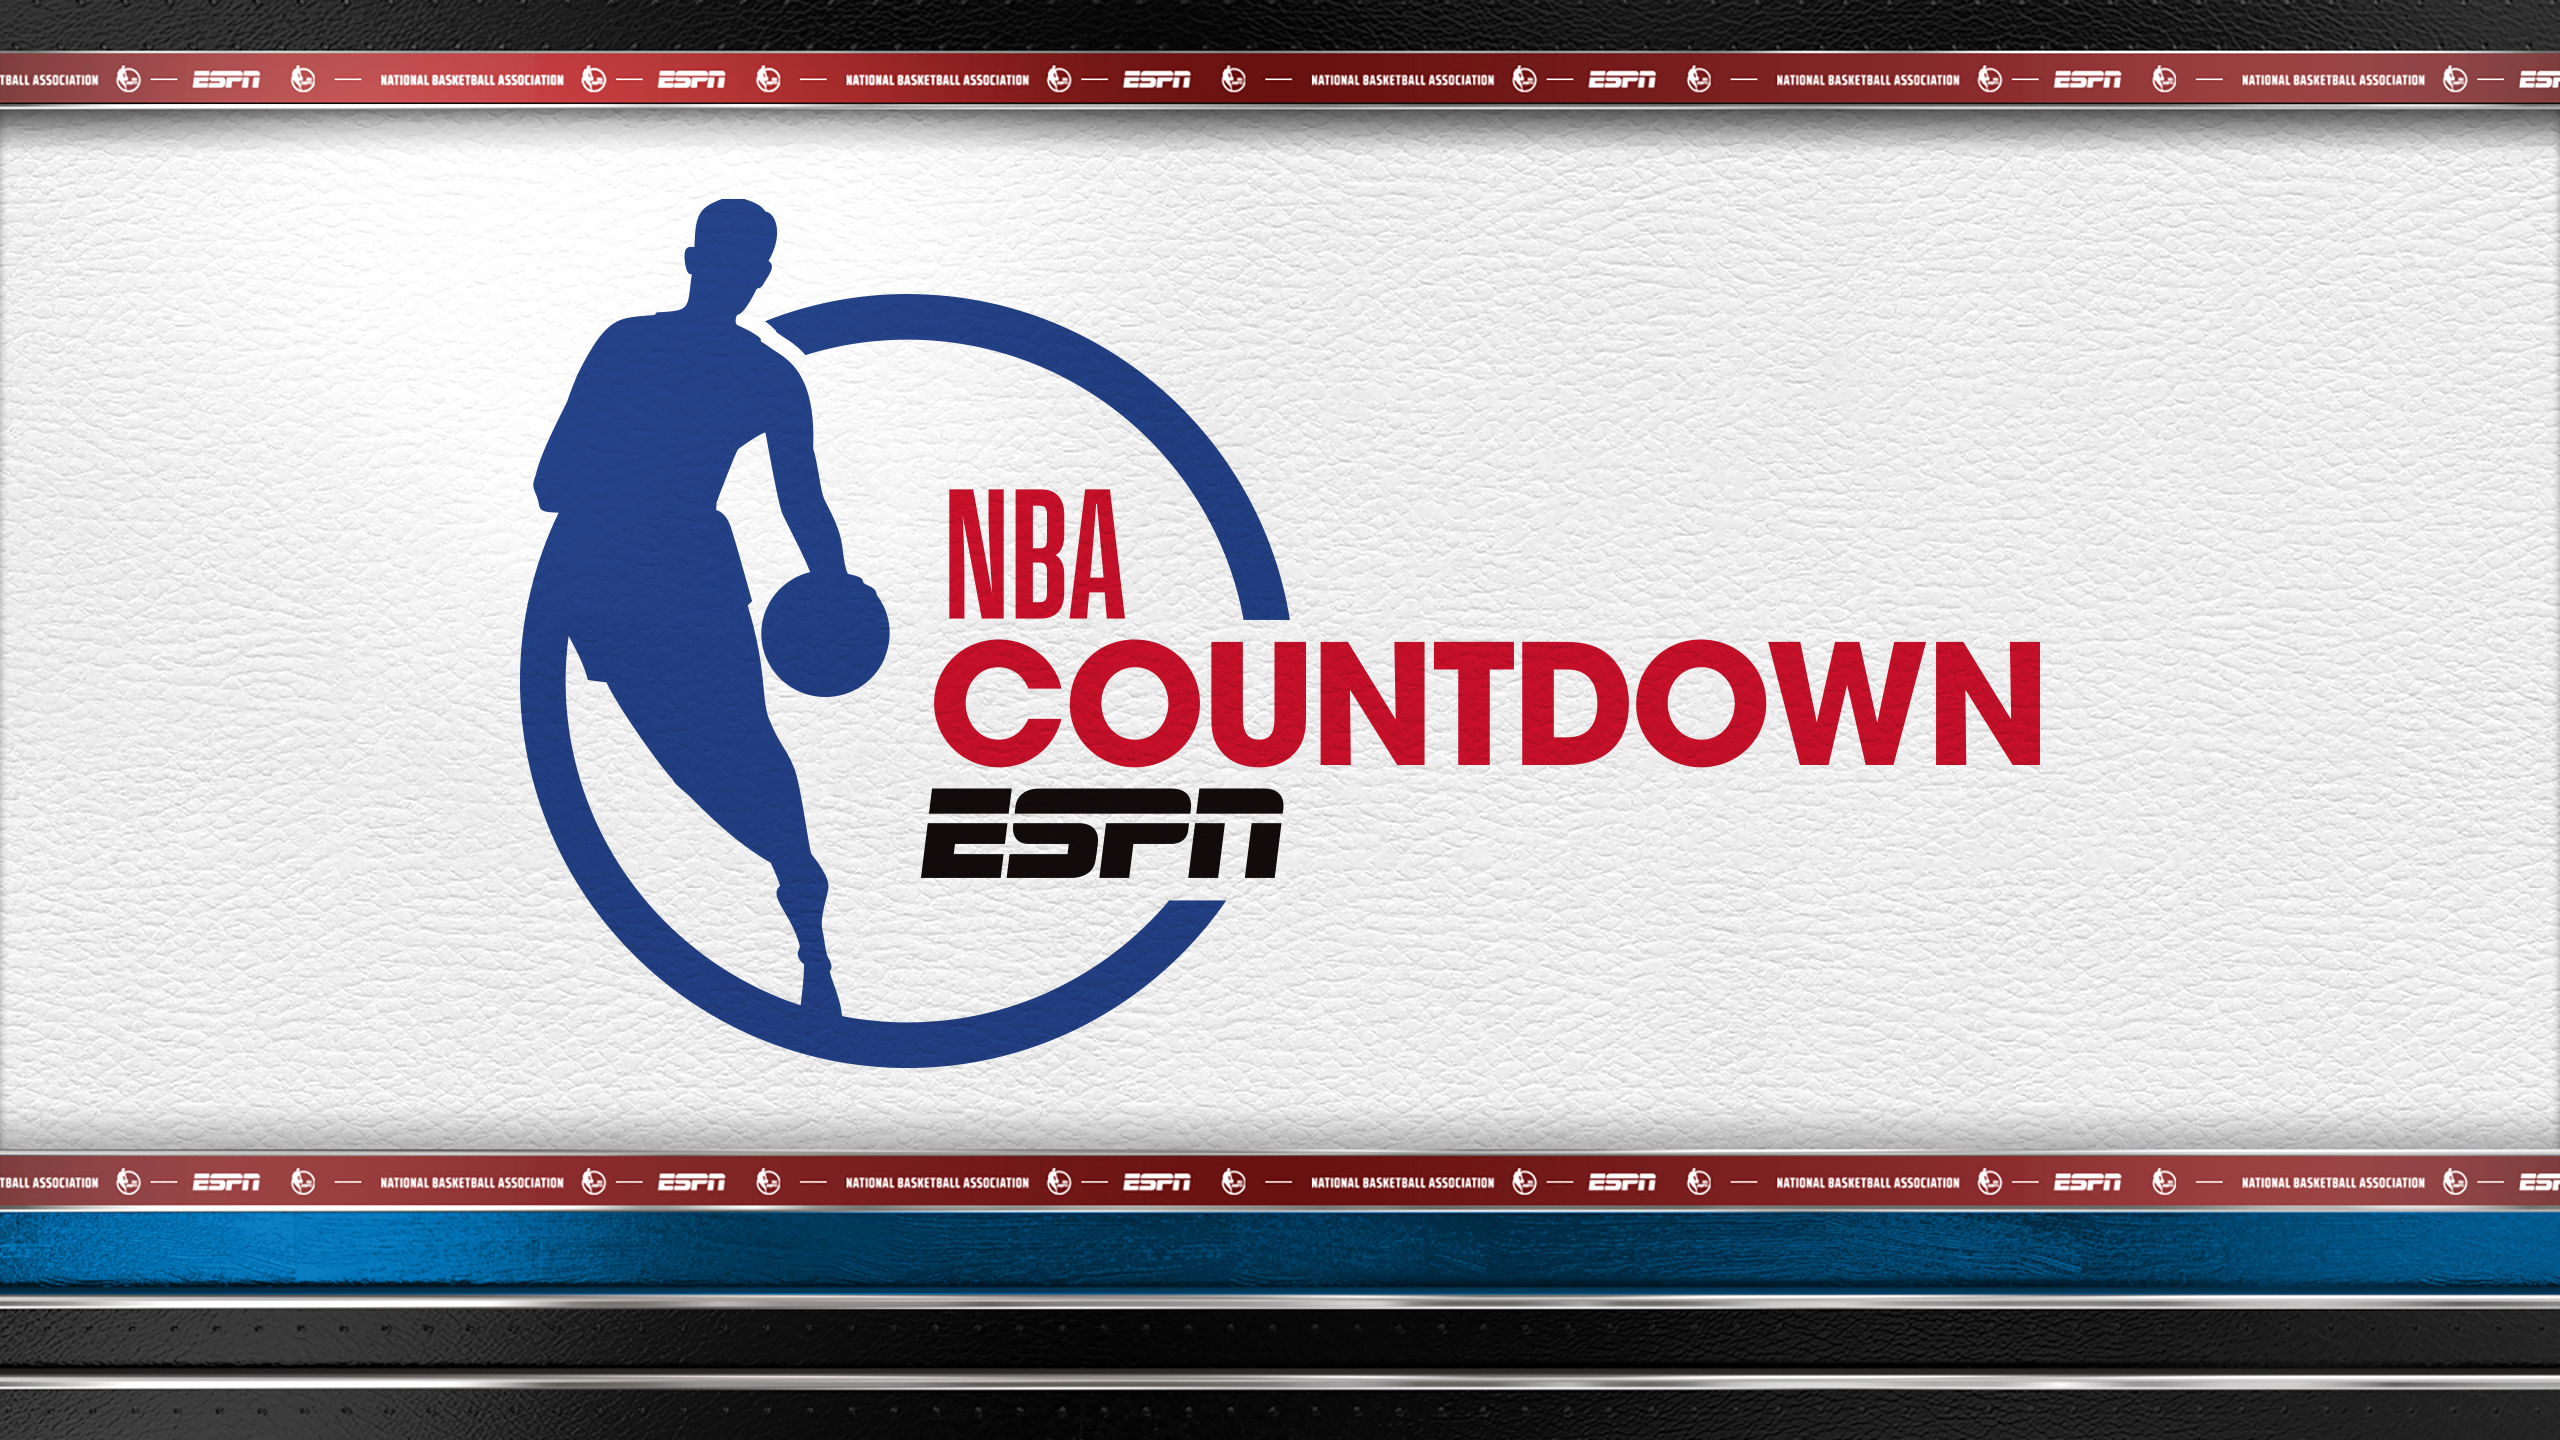 NBA Countdown to presented by Mountain Dew